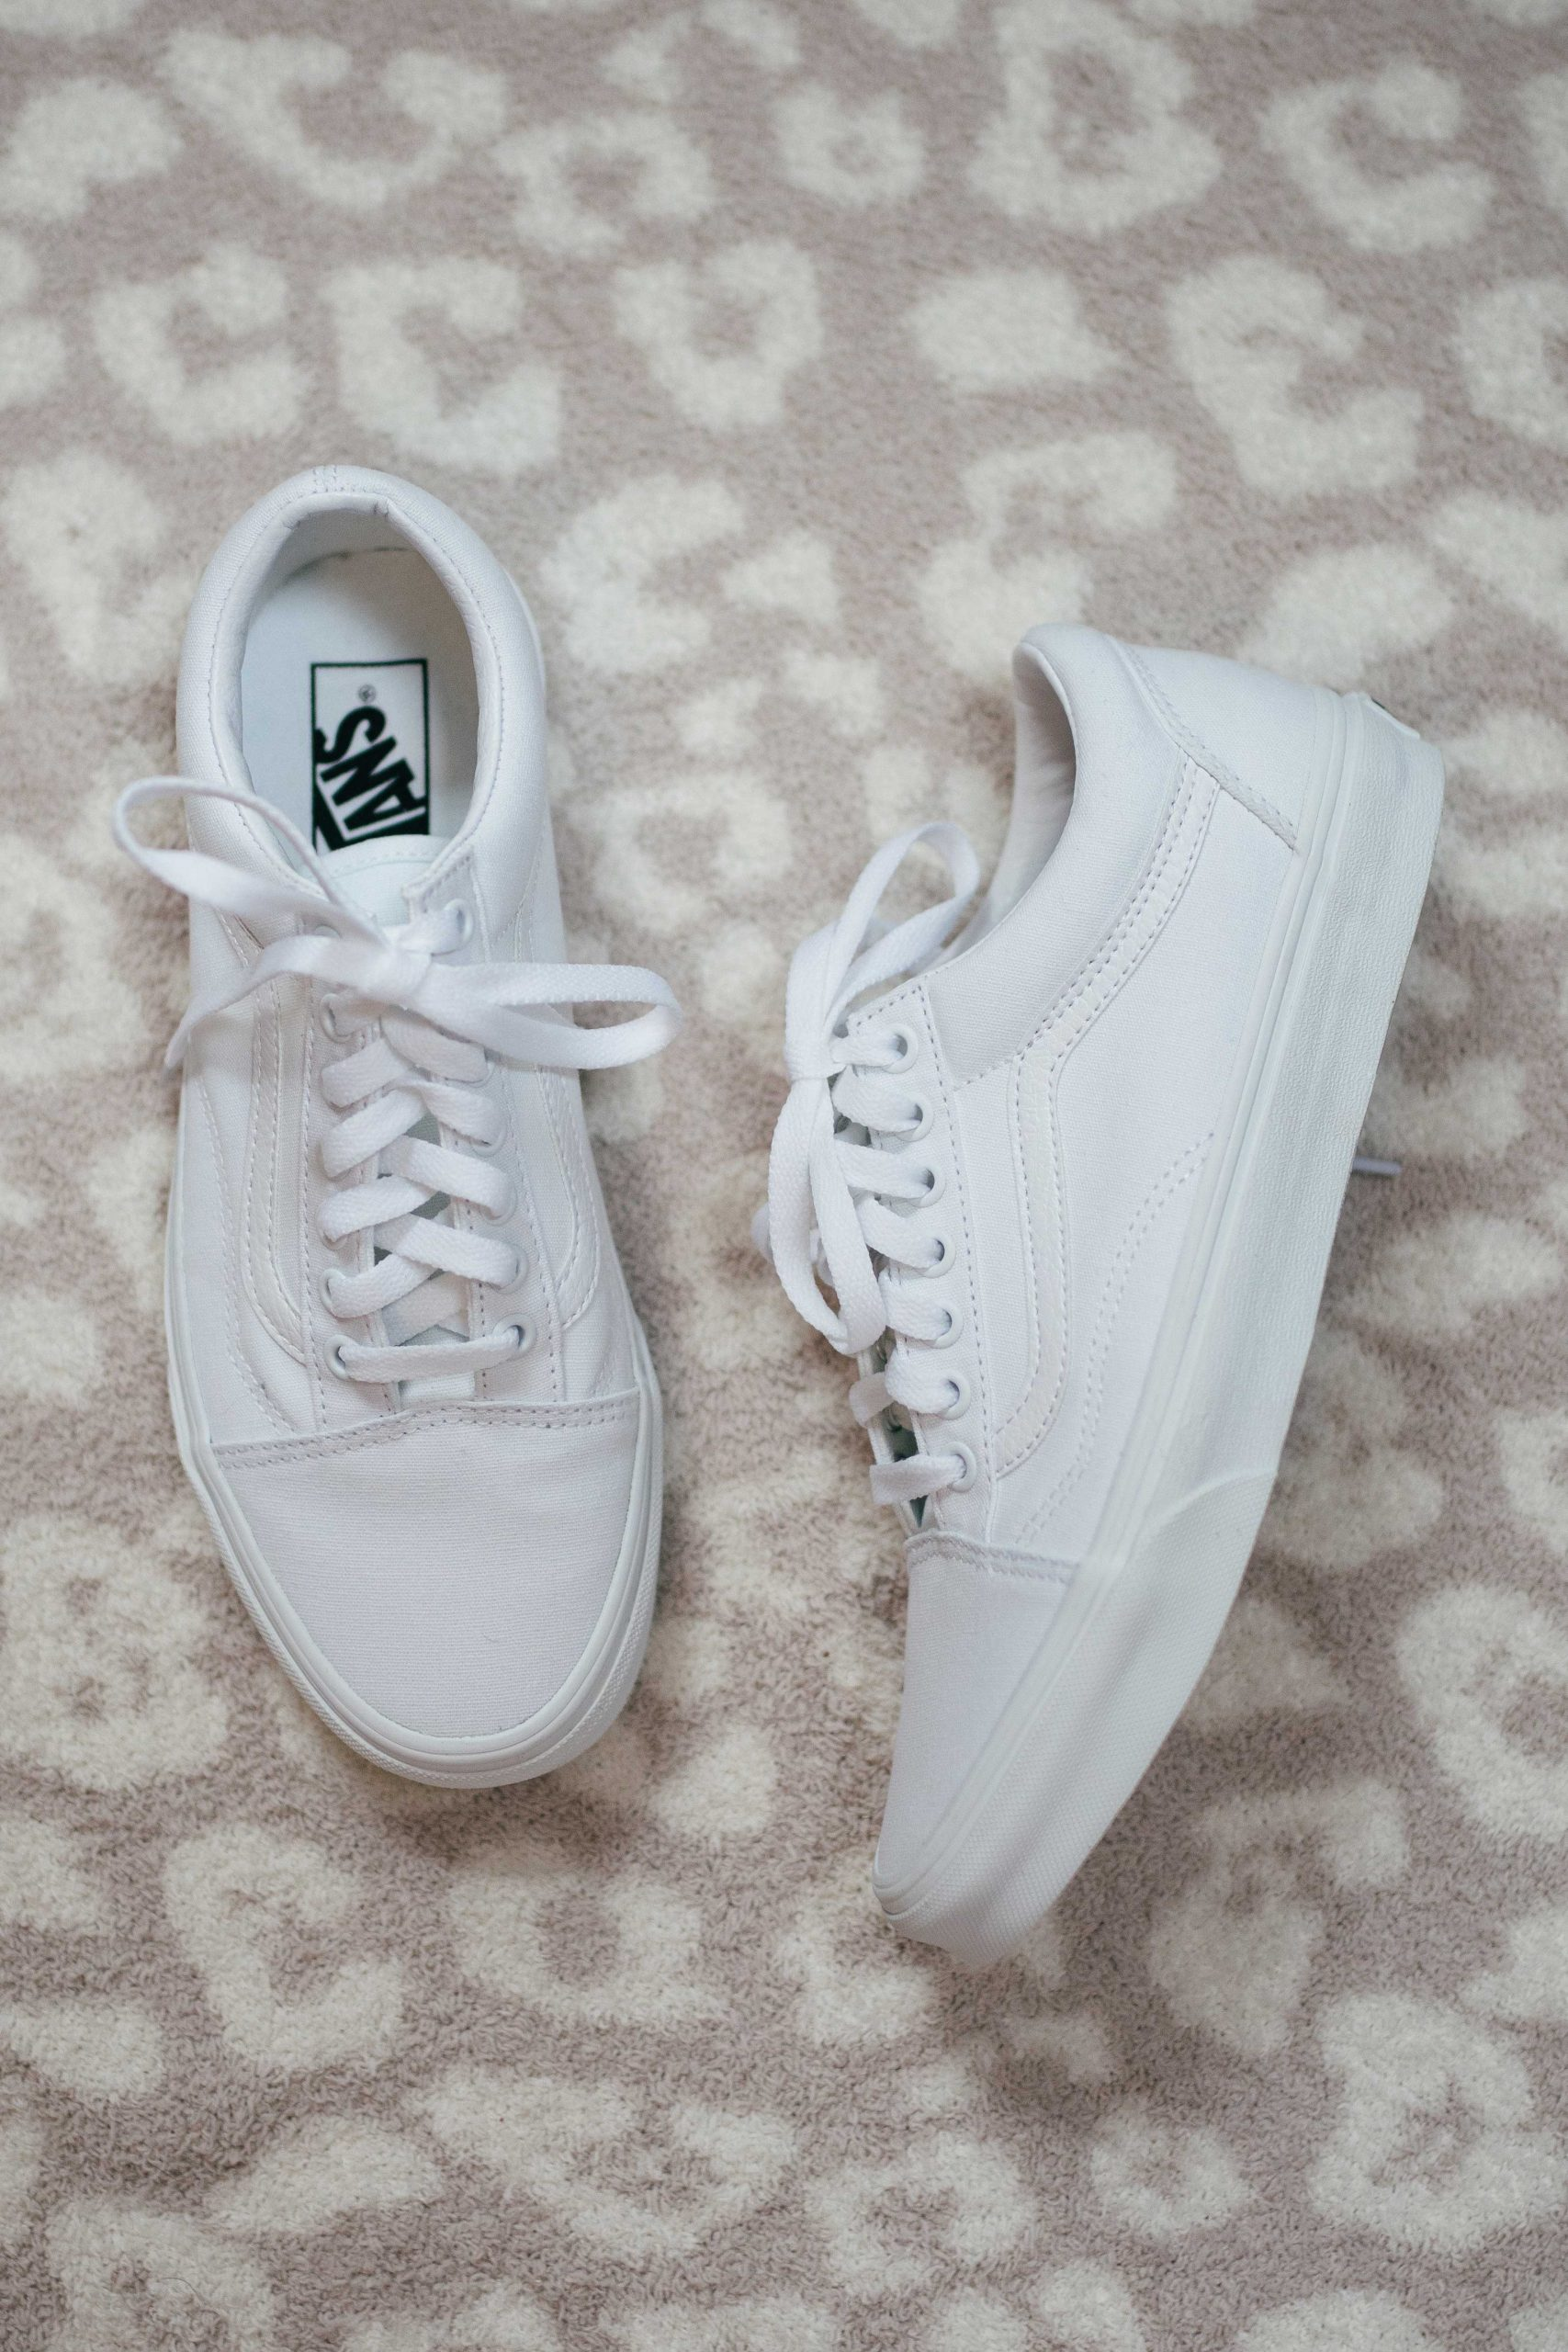 Virginia blogger, Lauren Dix, tries on 10 different pairs of white sneakers for the ultimate white sneaker review! The Vans Old Skool pictured here are included!